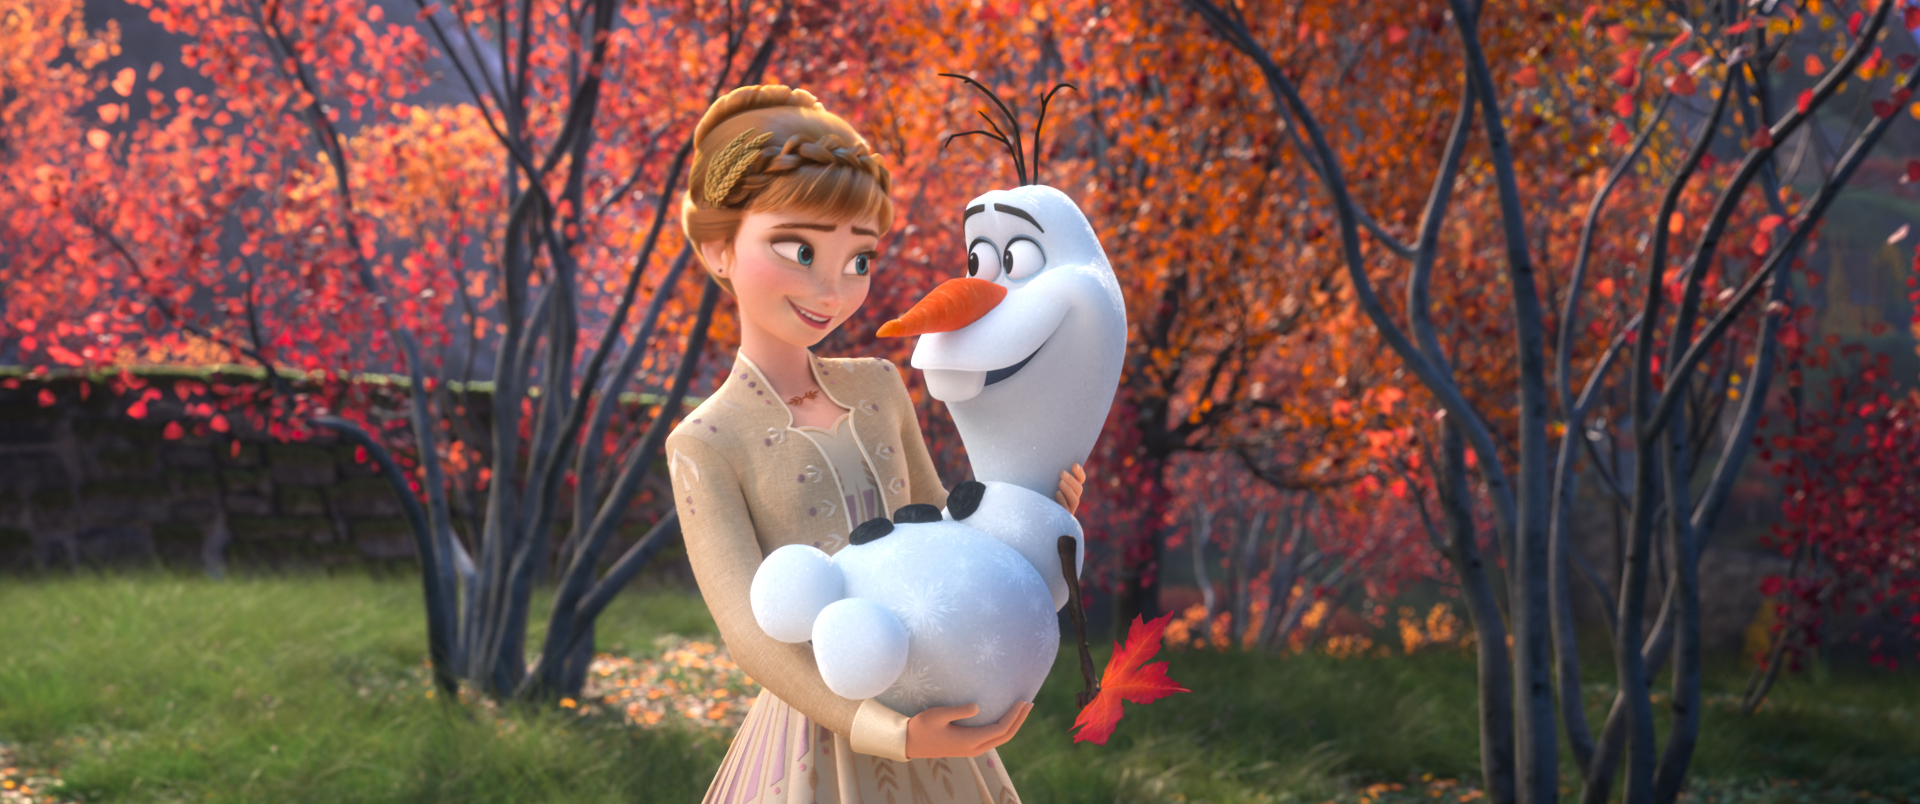 Frozen 2 Secrets: Did you know Frozen 2 takes place in fall not winter?!?